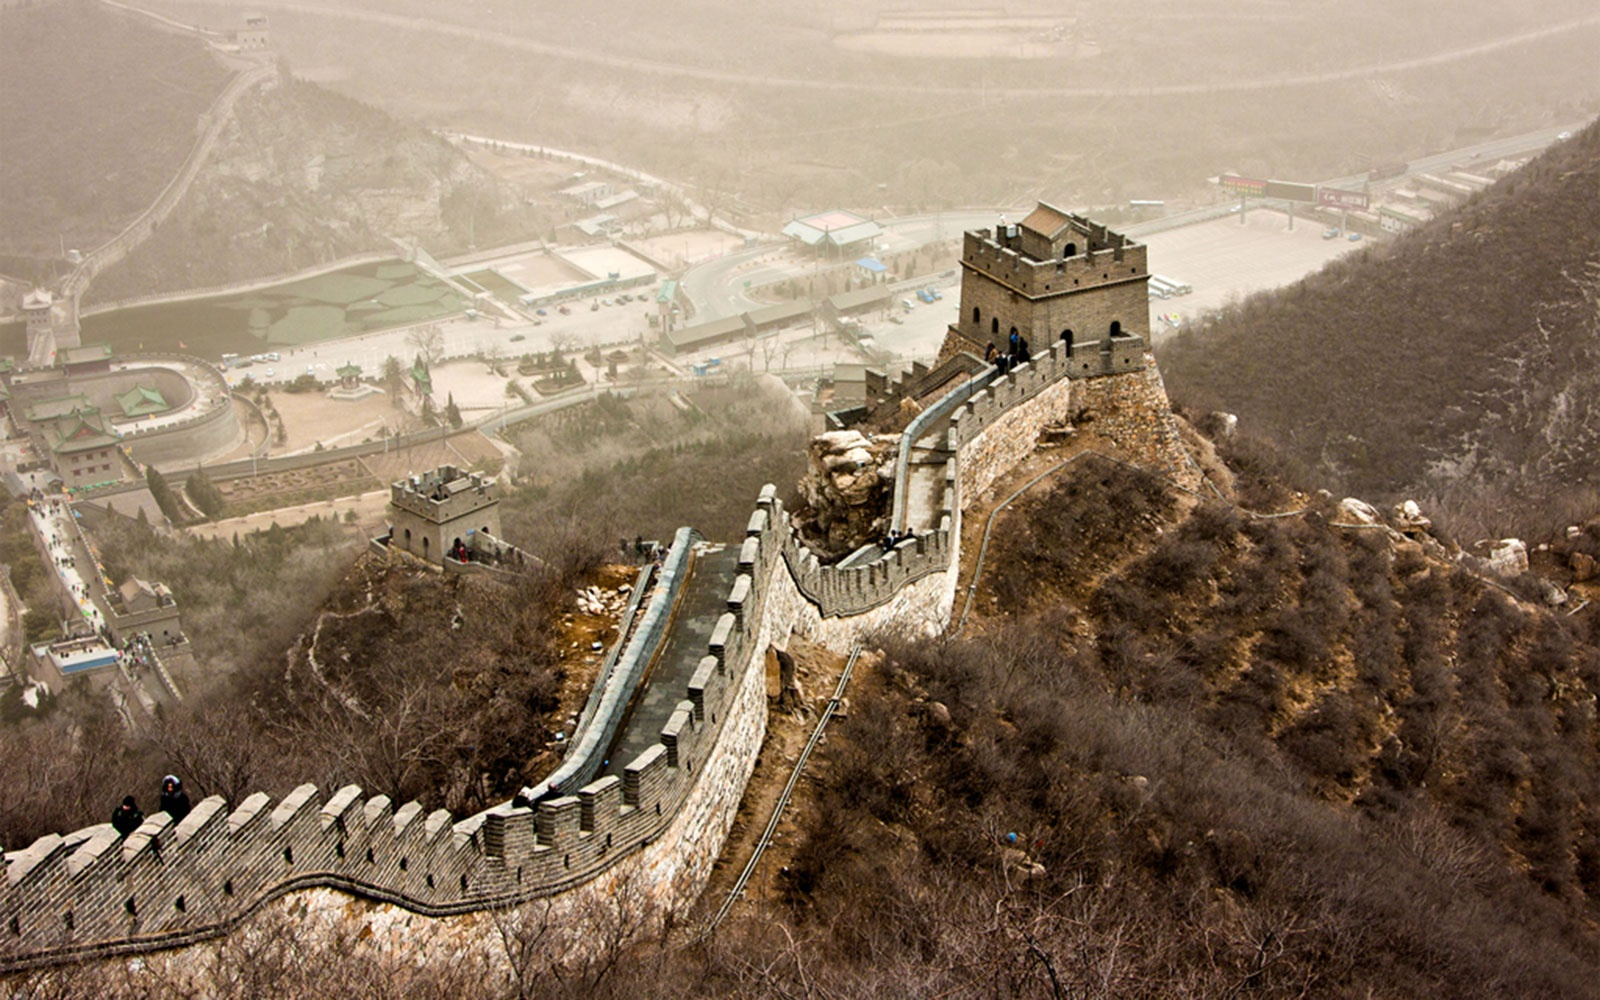 The Great Wall of China is Nearly One-Third Gone